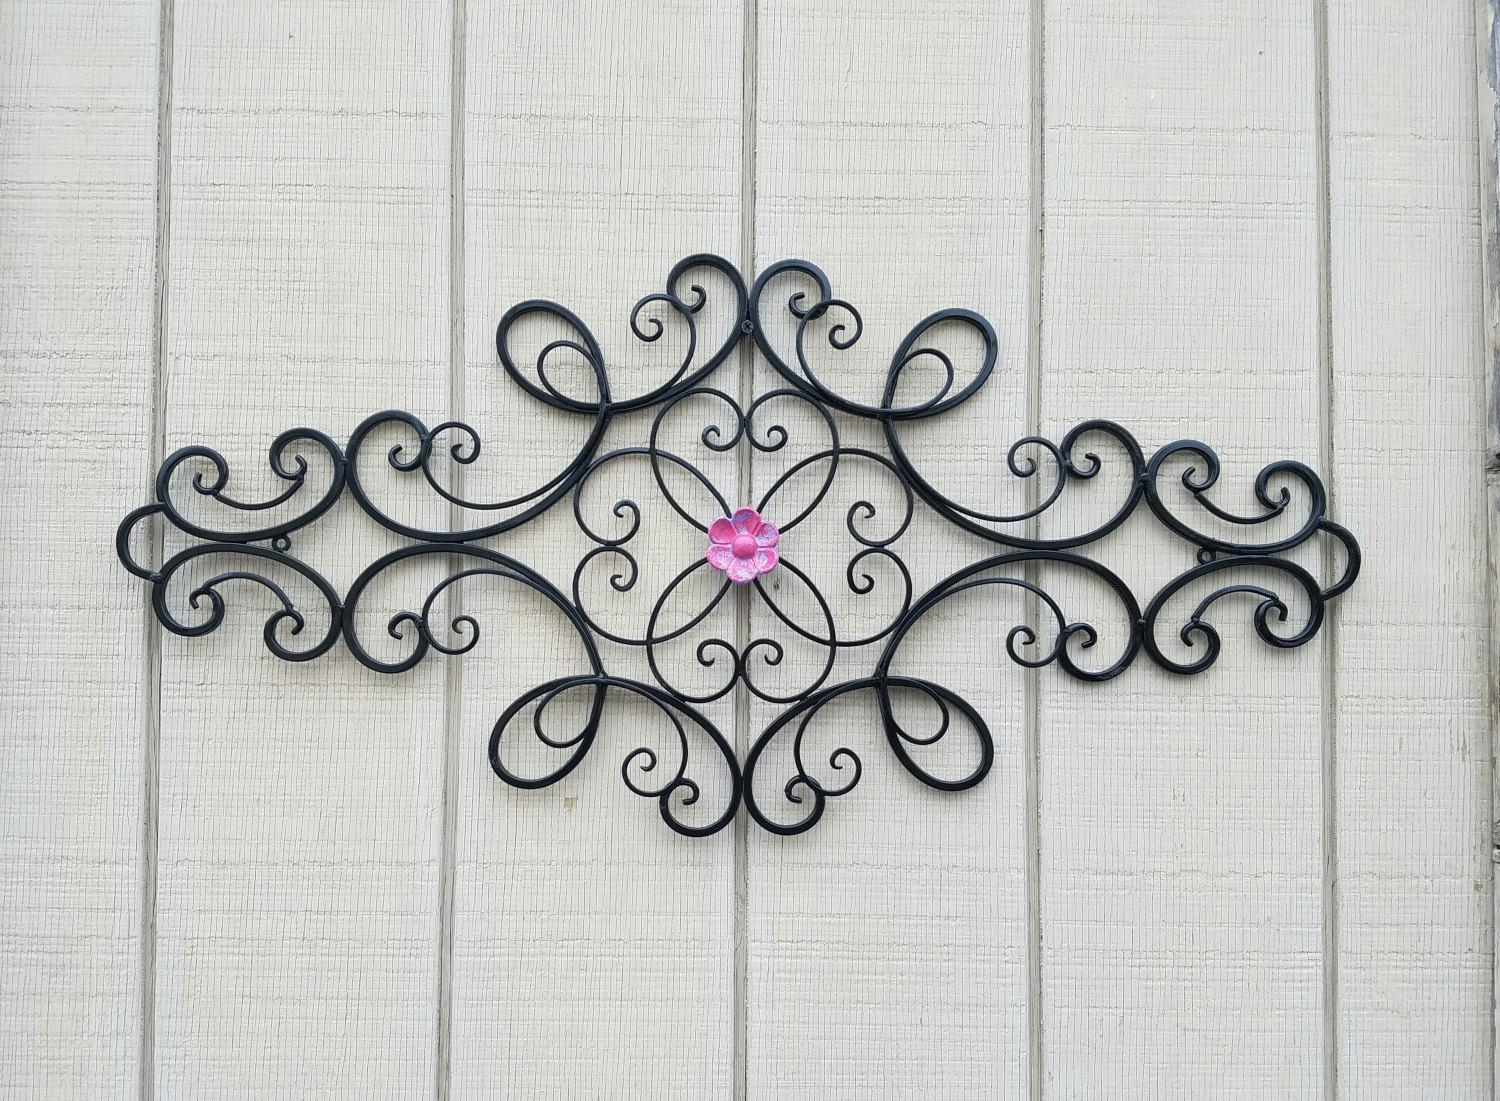 Wrought Iron Wall Art / Metal Wall Art / Large Metal Wall Art In Large Wrought Iron Wall Art (View 19 of 20)